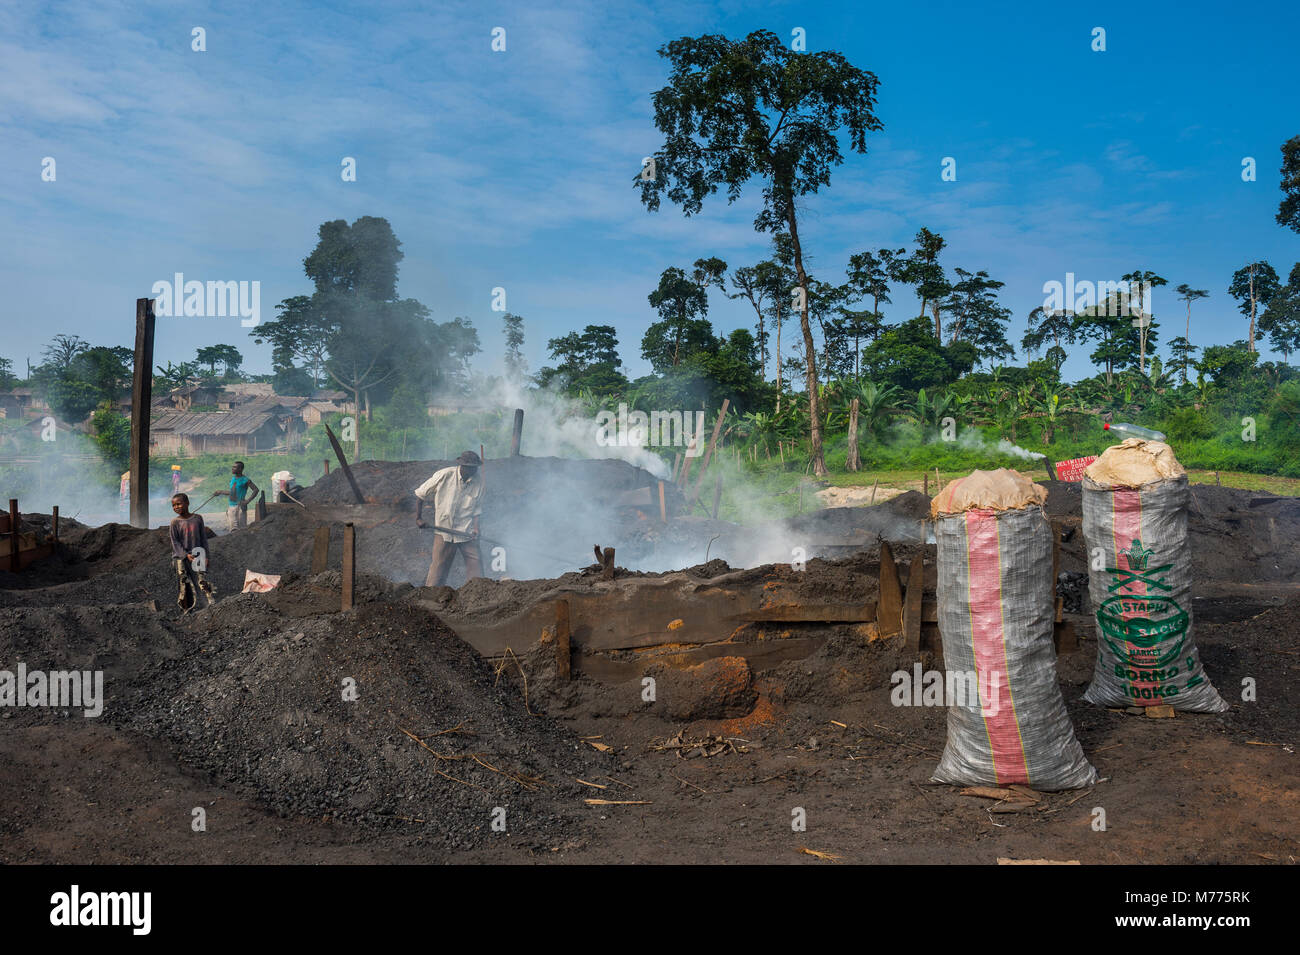 Coal production out of wood (charcoal), Libongo, deep in the jungle, Cameroon, Africa - Stock Image